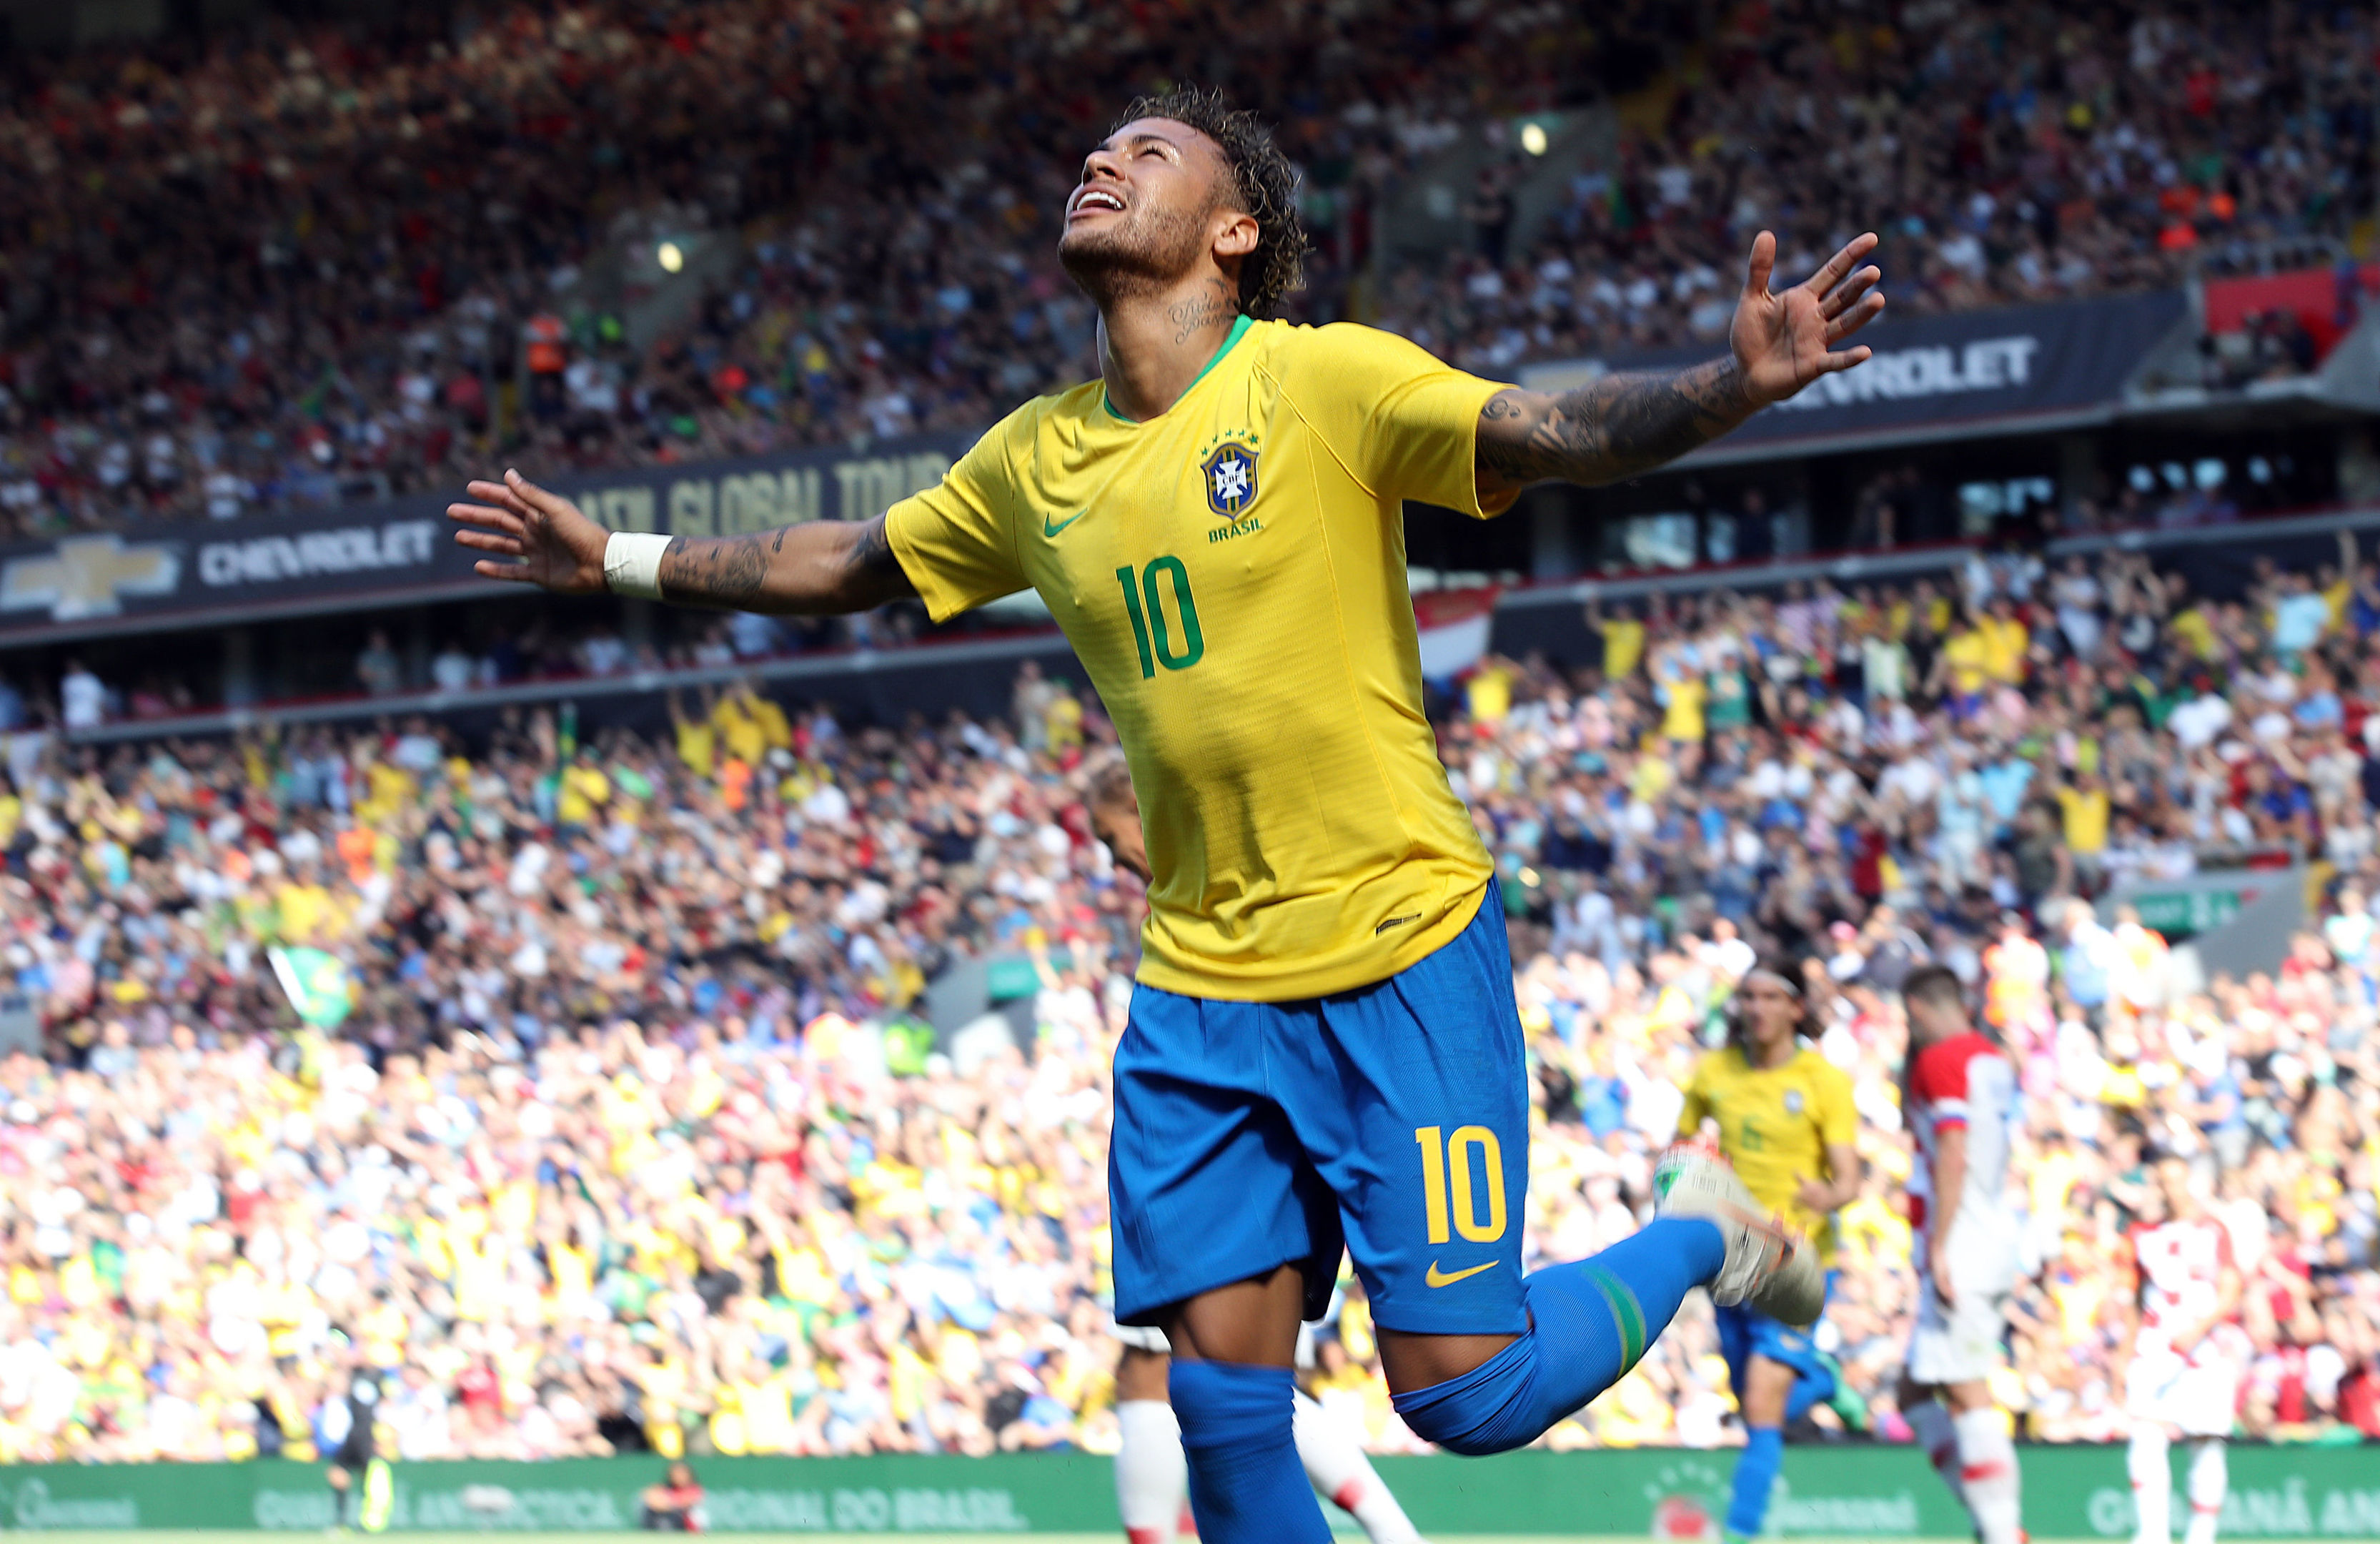 Neymar will be hoping to lead Brazil to glory once more in a World cup.